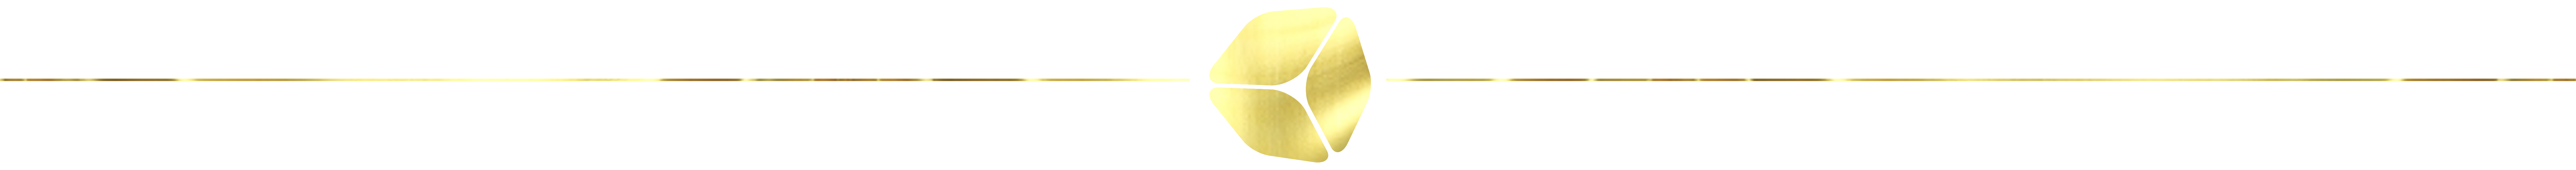 Page-Break-Gold-Texture.png?profile=RESIZE_584x